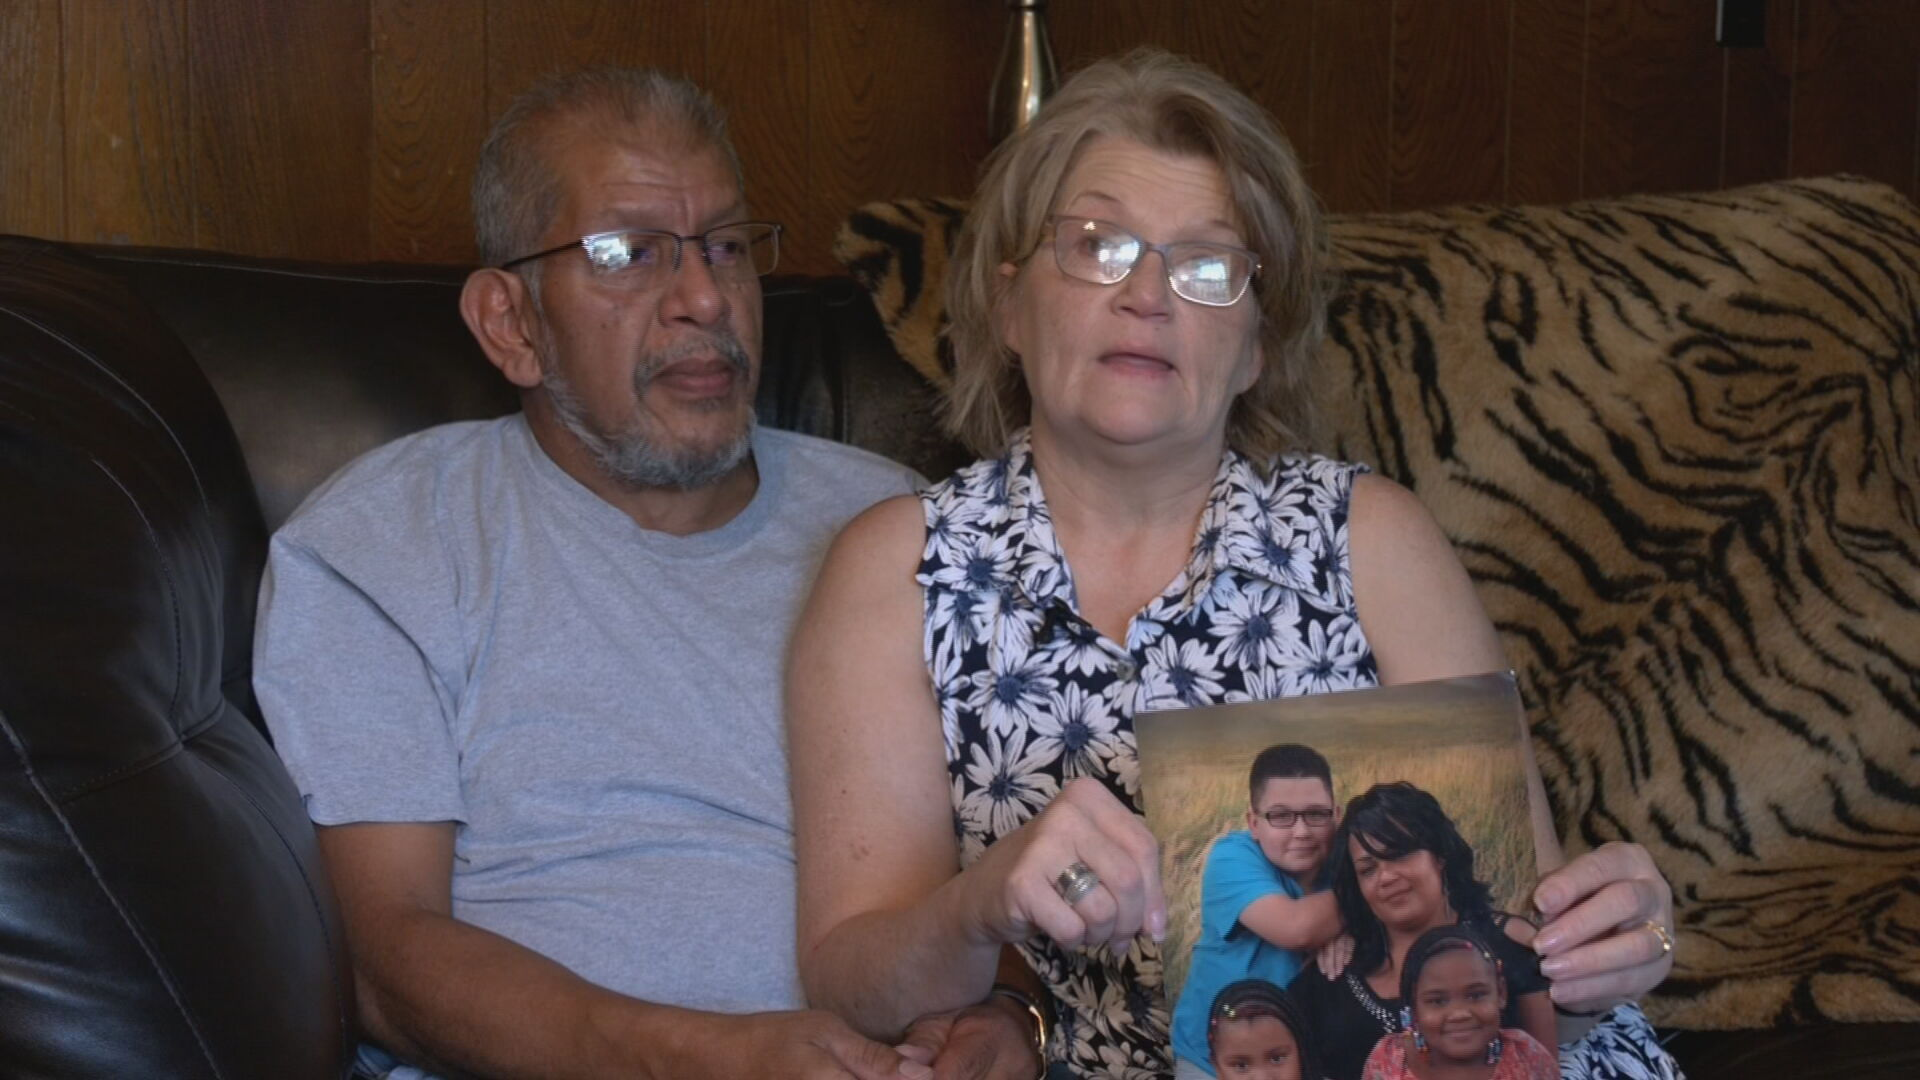 Tulsa Family Hopes Woman's Arrest For Arson Sets Her On Right Track